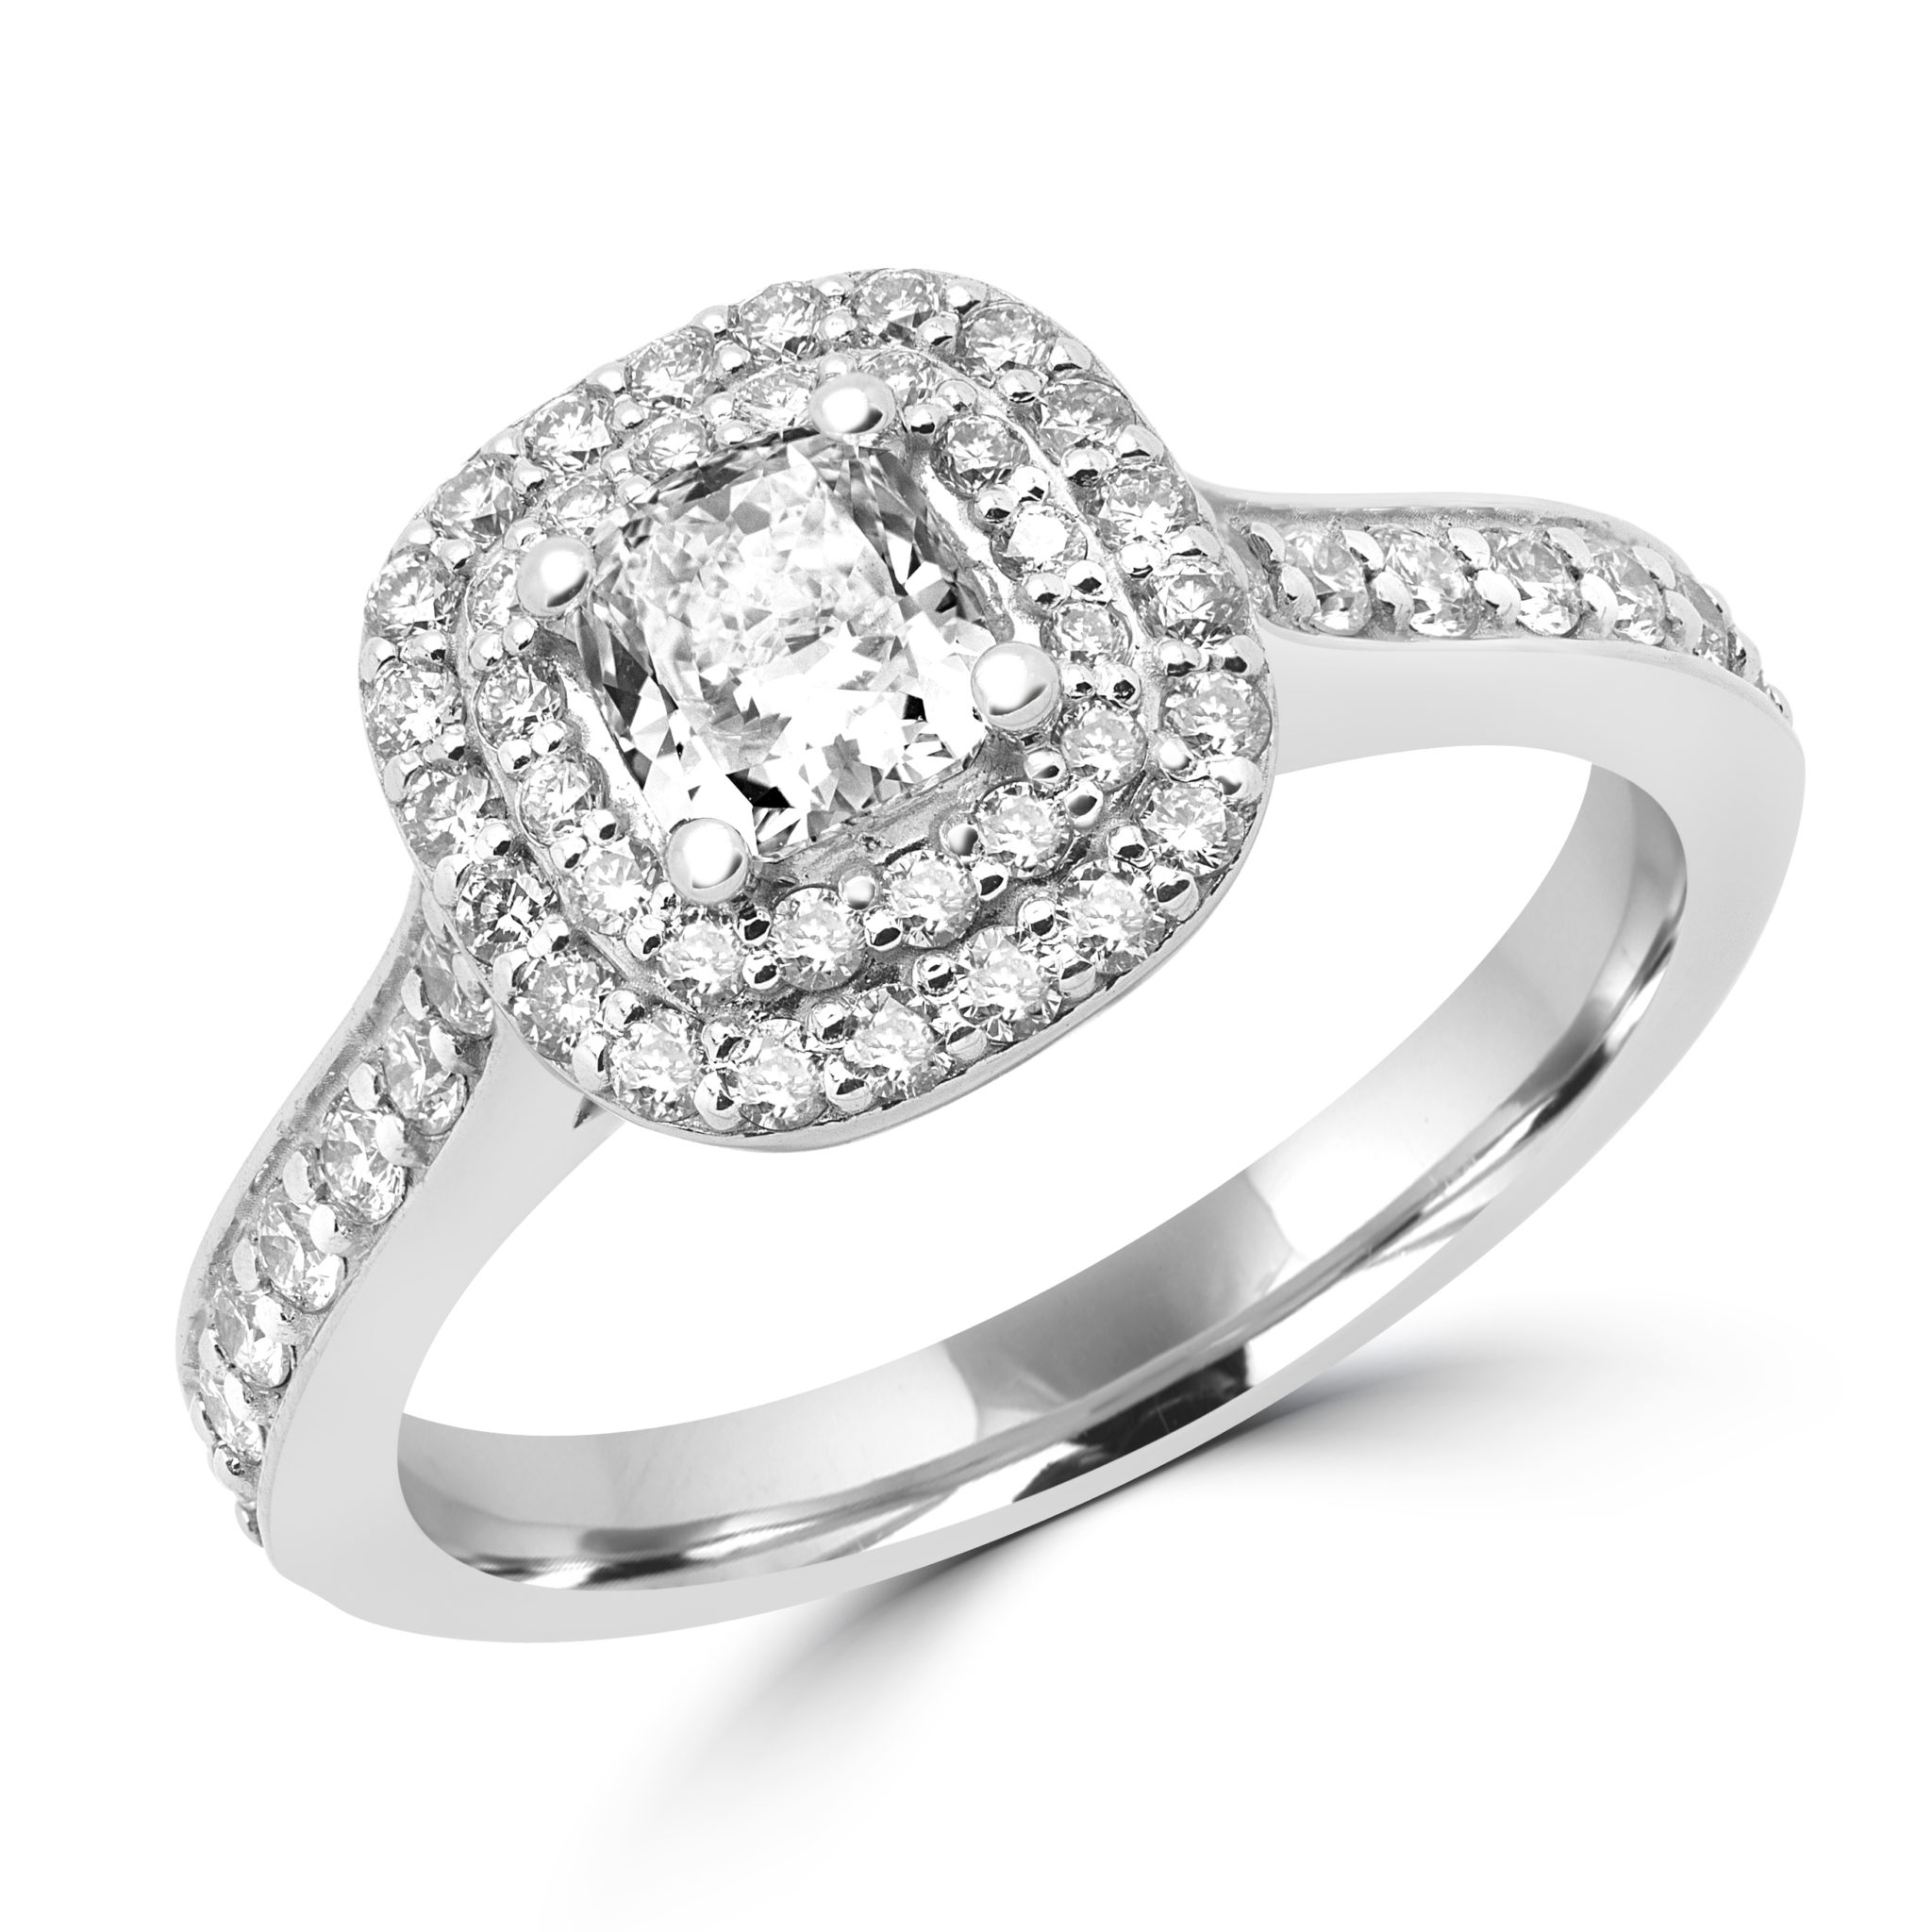 Halo Sparkling Engagement Ring 0.58 (Ctw) + Cz Center In 14K White Gold With Most Current Sparkling Halo Rings (Gallery 12 of 25)